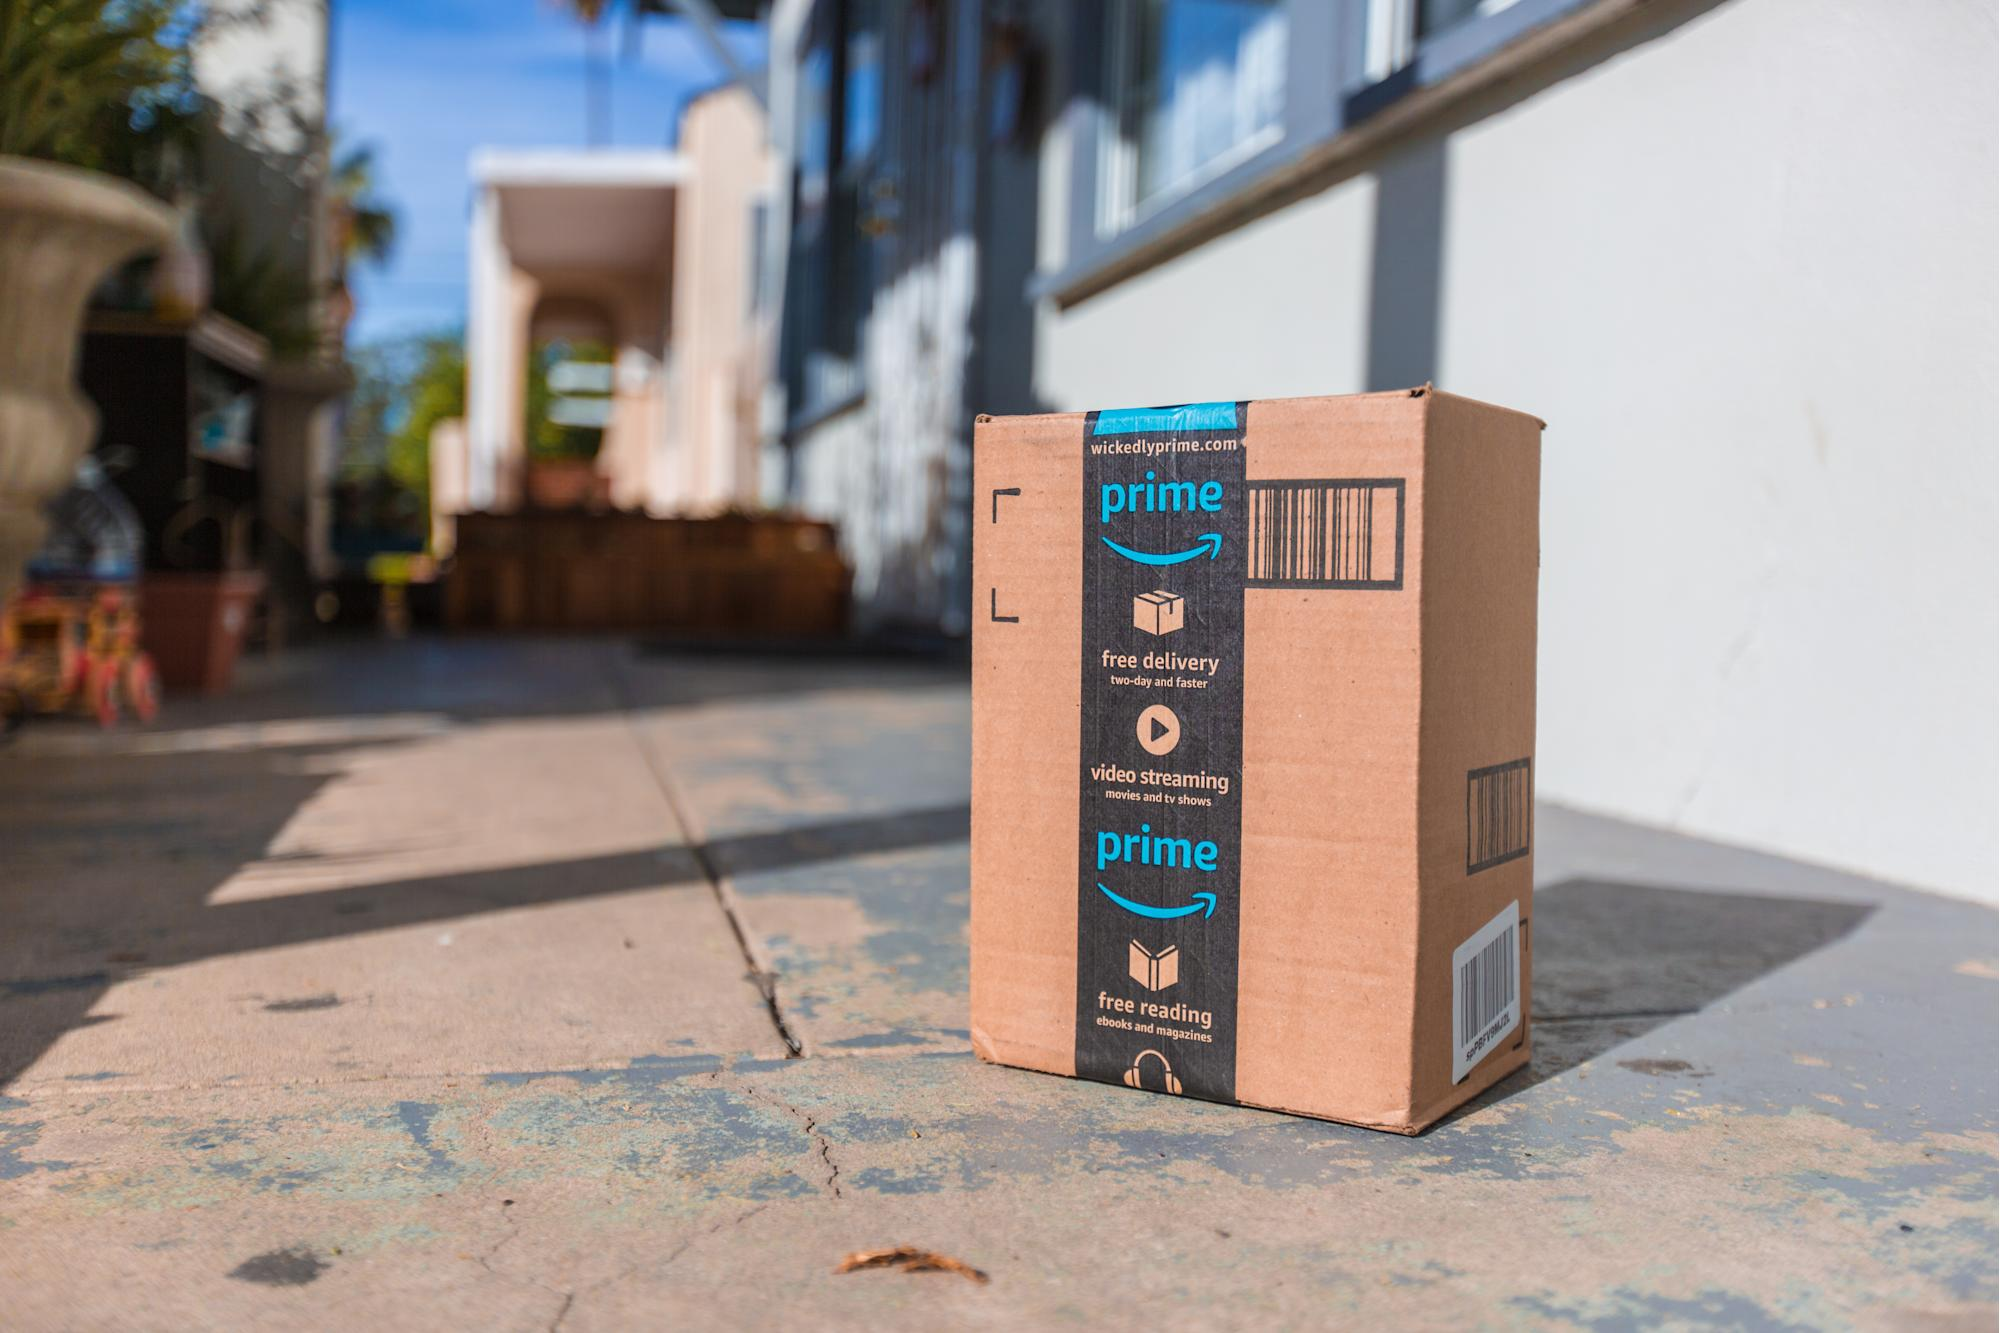 Amazon and the US government team up to thwart online counterfeits